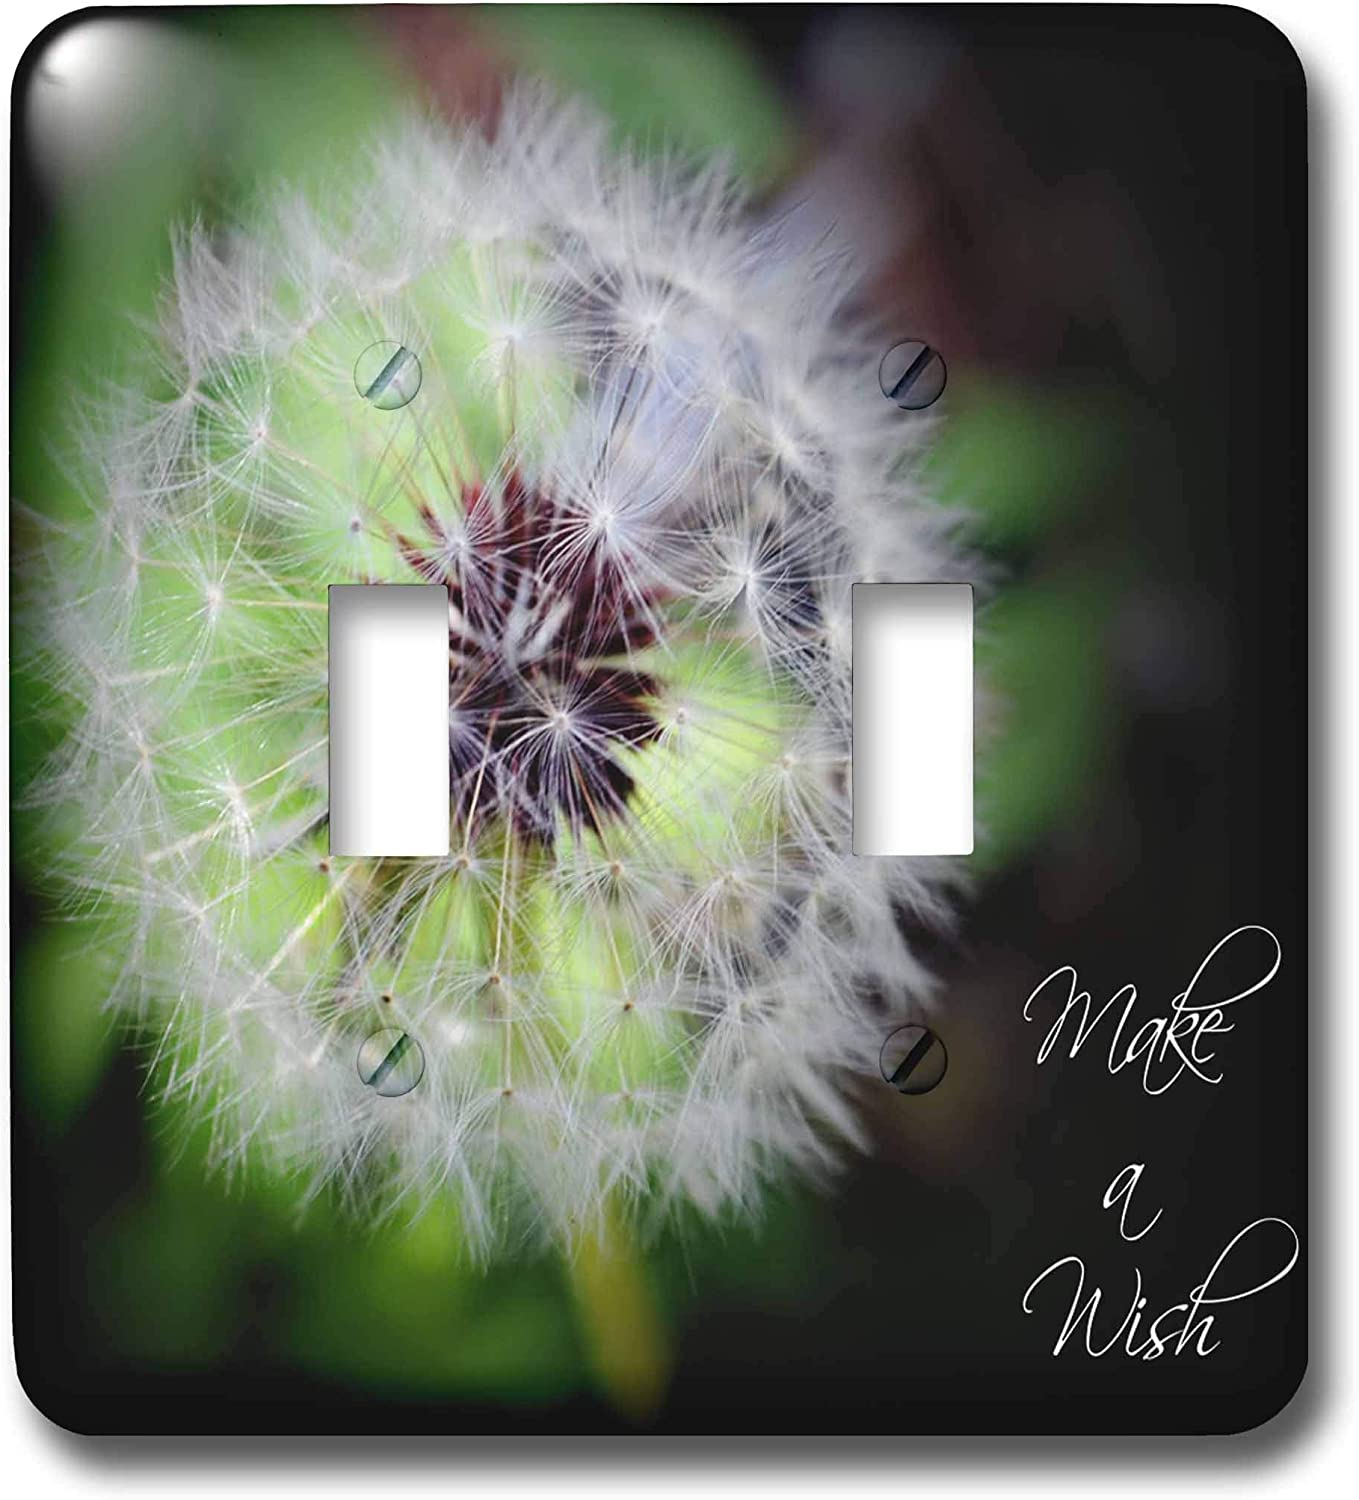 3drose Lsp 30607 2 Make A Wish Dandelion Puff Ball Double Toggle Switch Switch Plates